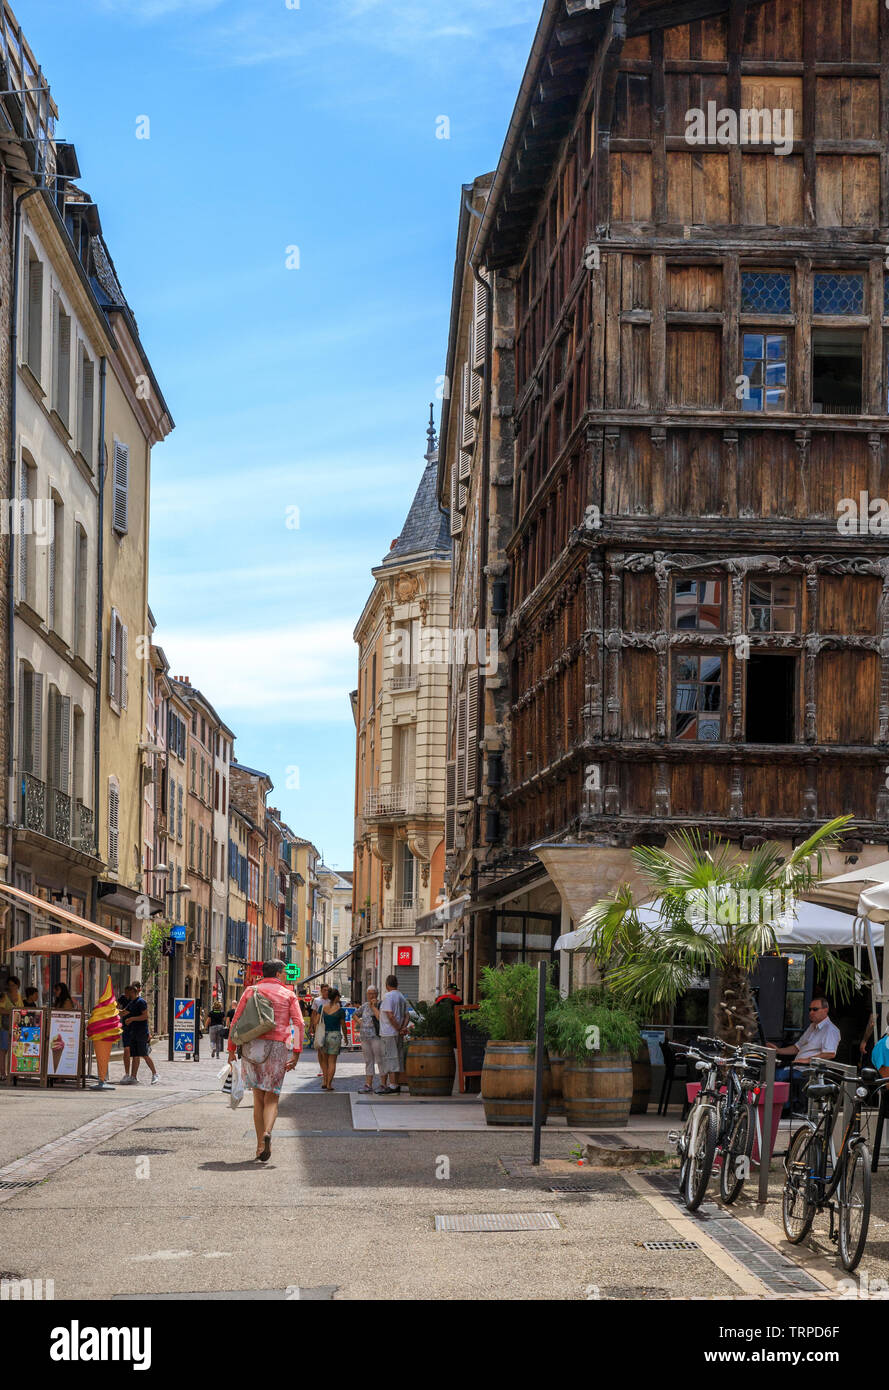 France, Saone et Loire, Macon, Place aux Herbes and the wooden house built between 1490 and 1510, certainly the oldest house in the city // France, Sa - Stock Image